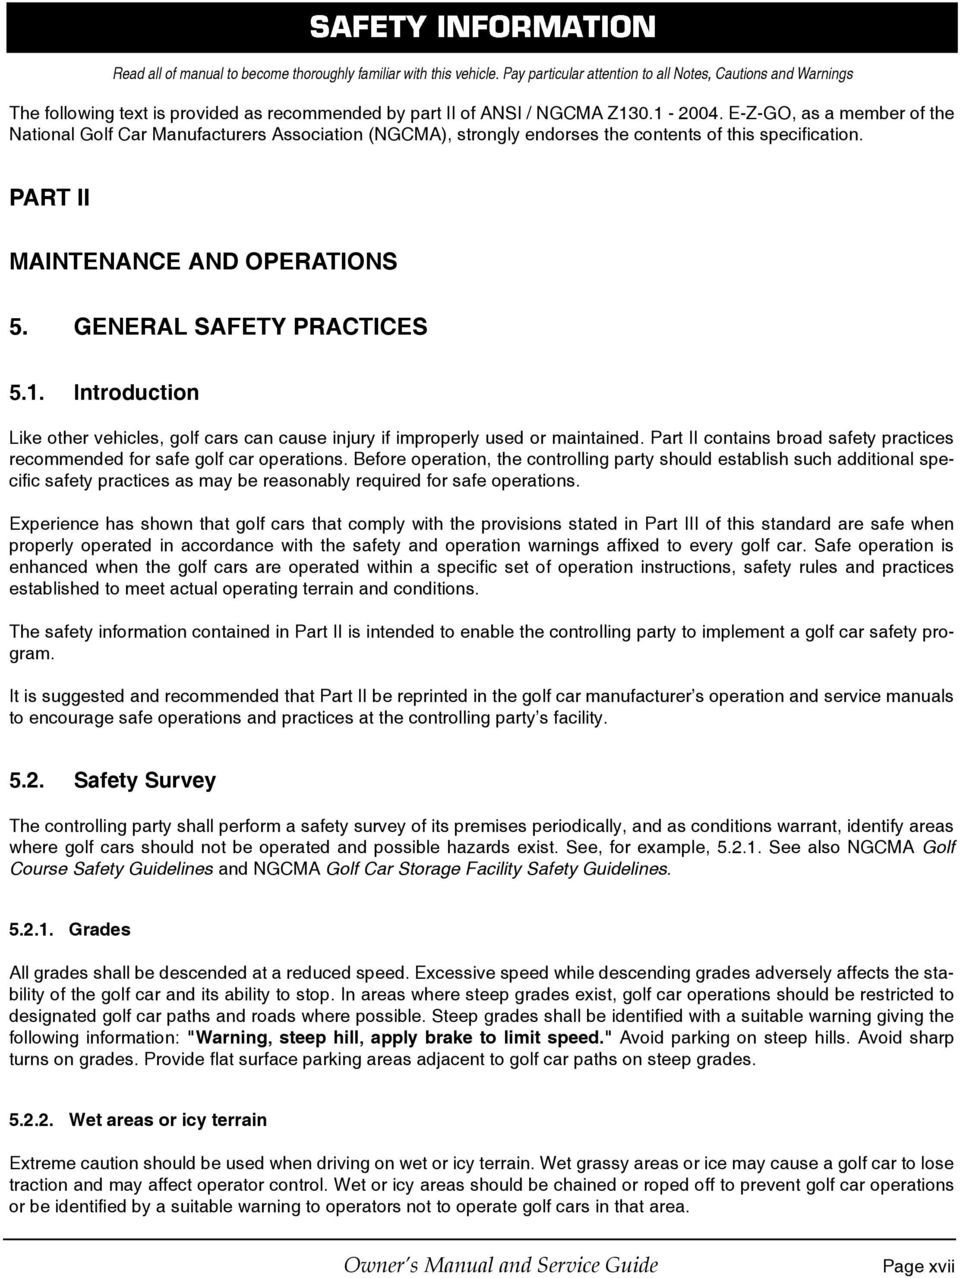 E-Z-GO, as a member of the National Golf Car Manufacturers Association (NGCMA), strongly endorses the contents of this specification. PART II MAINTENANCE AND OPERATIONS 5. GENERAL SAFETY PRACTICES 5.